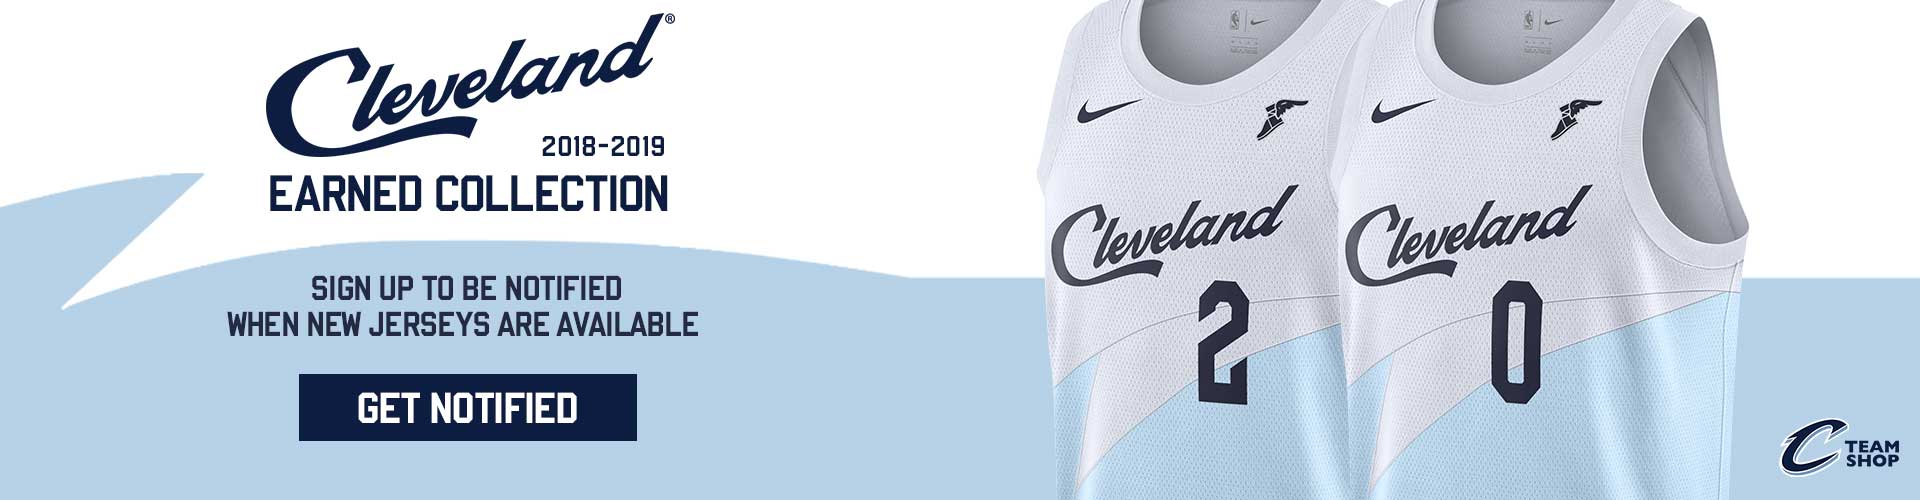 Cleveland Cavaliers Gear Online Sale